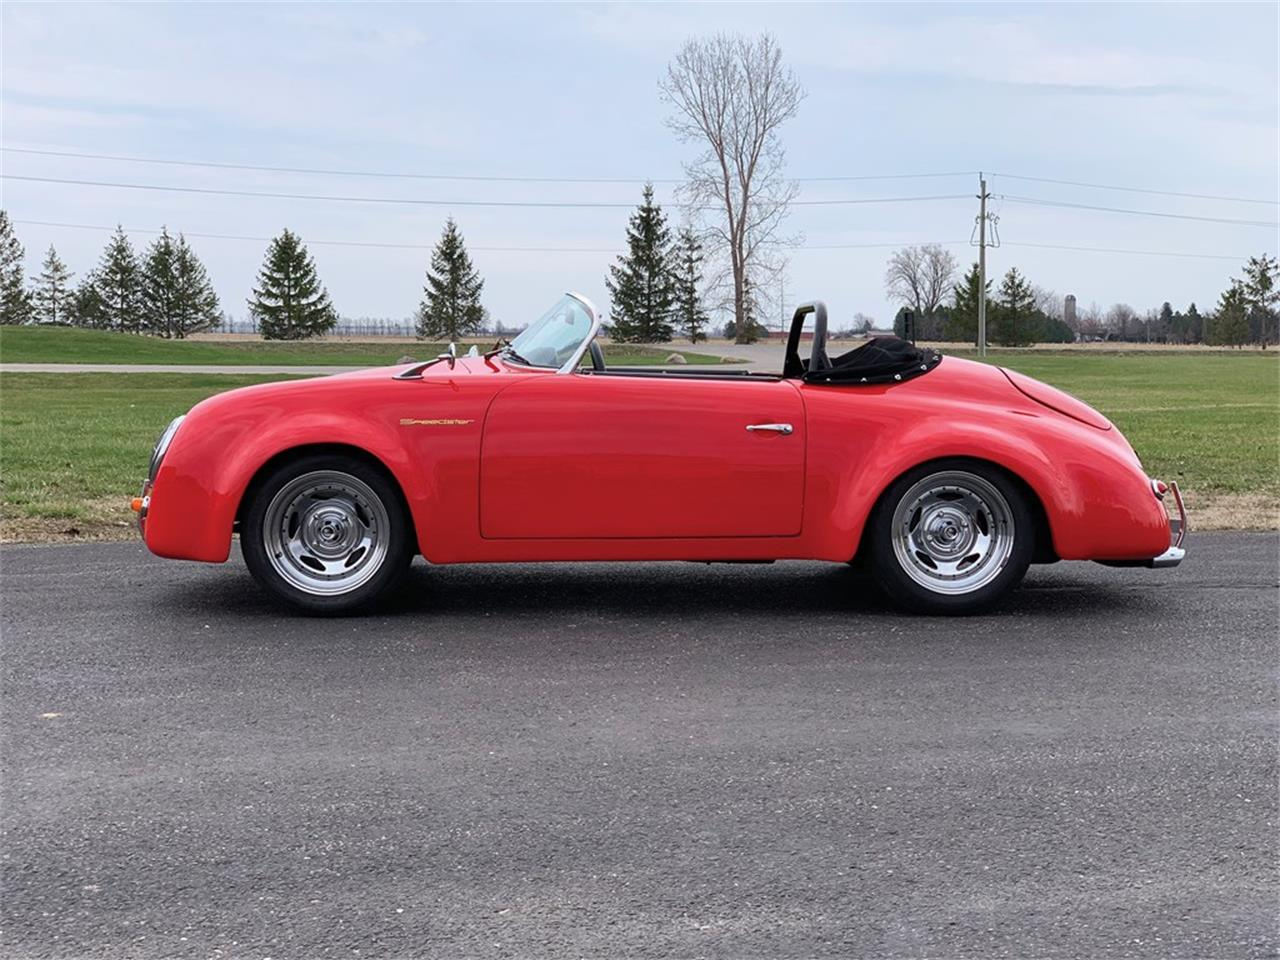 Large Picture of Classic 1957 Porsche 356 Replica located in Auburn Indiana Offered by RM Sotheby's - Q19W